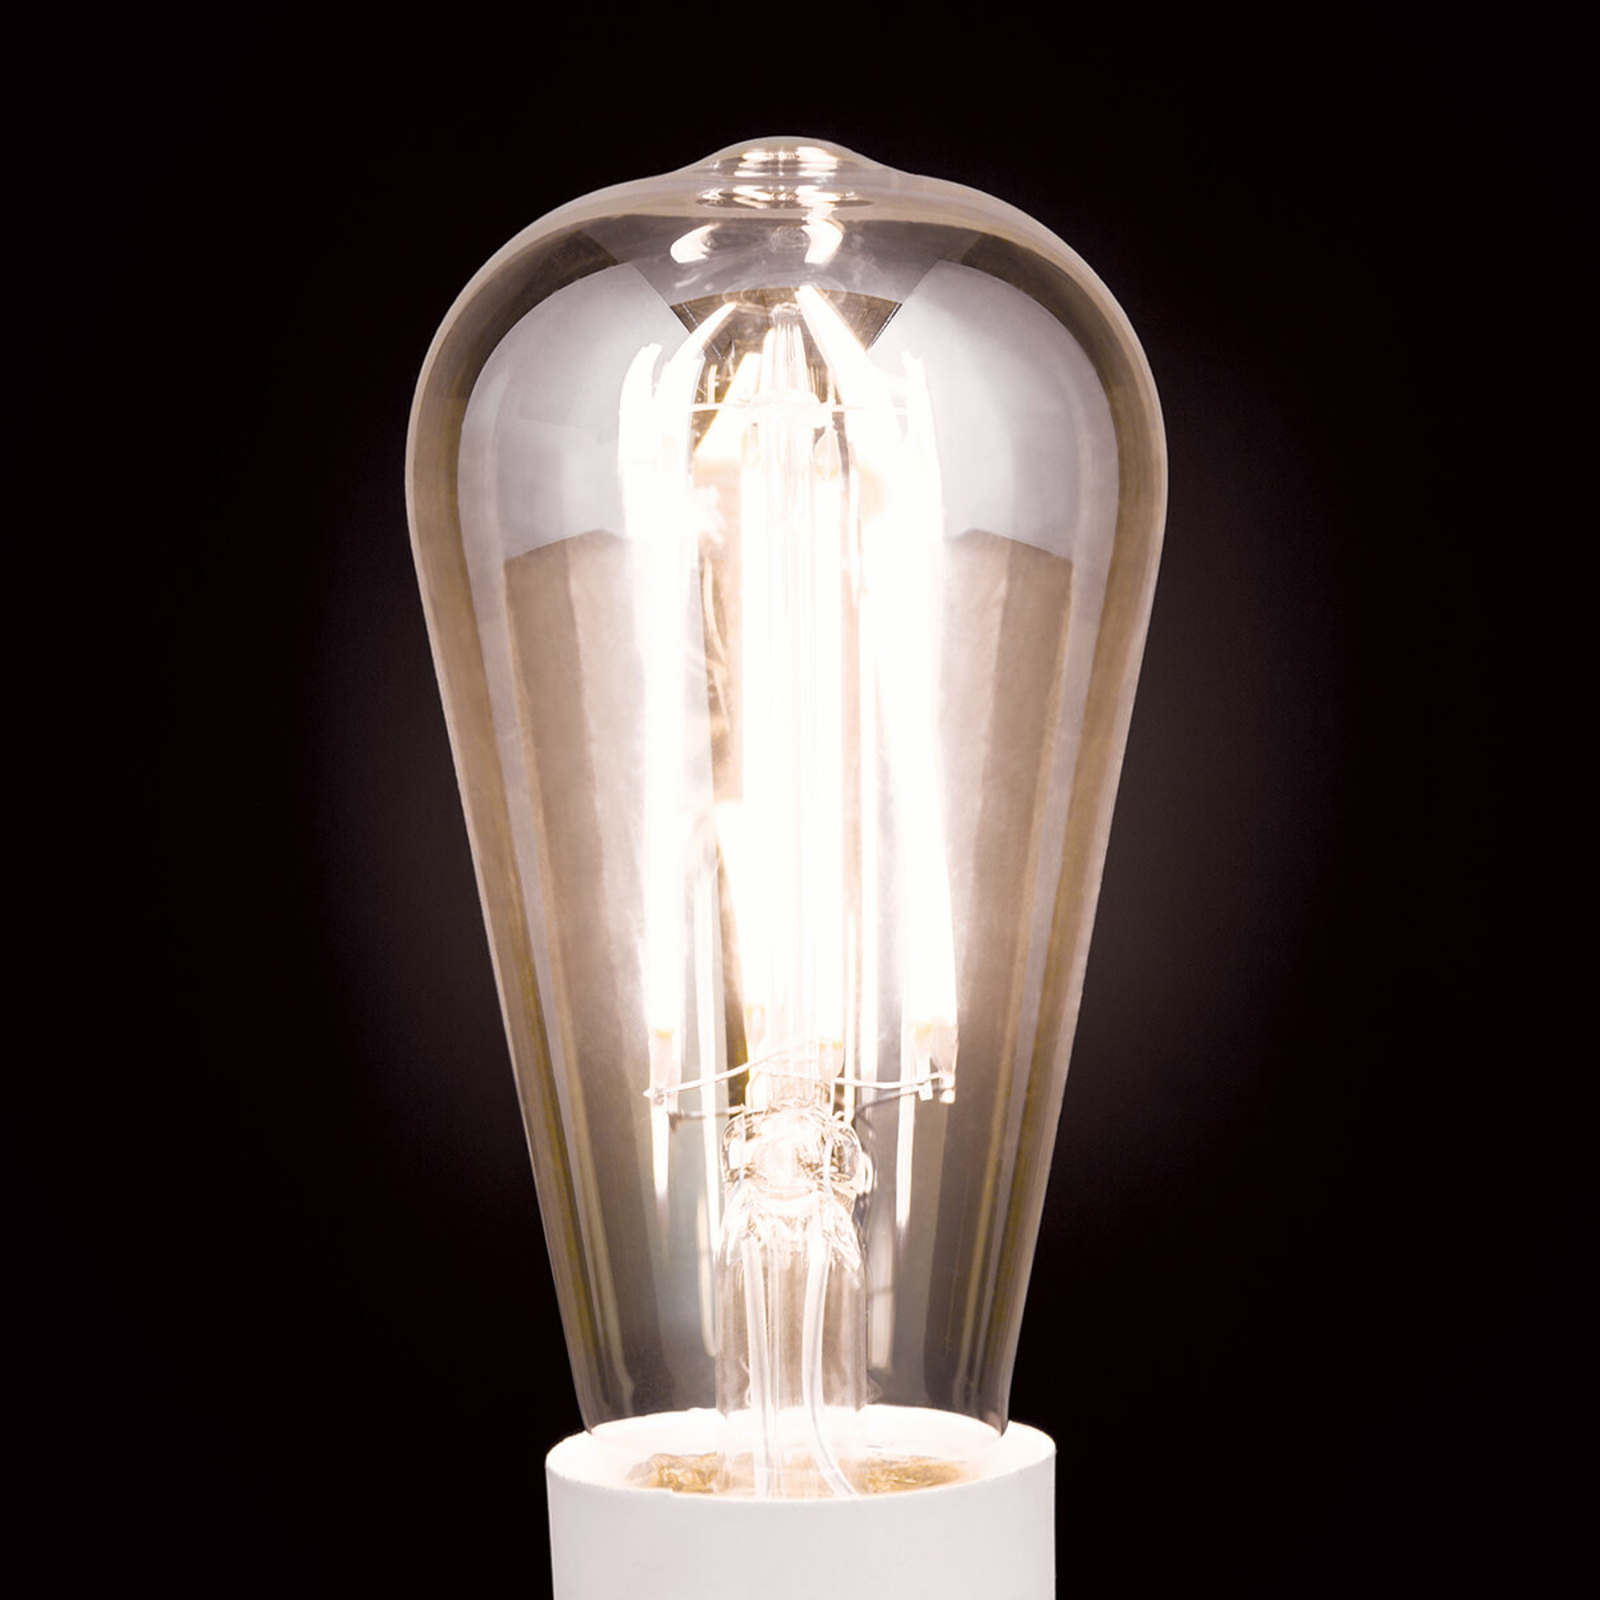 Rustic LED bulb E27 7W, warm white, dimmable_7255301_1